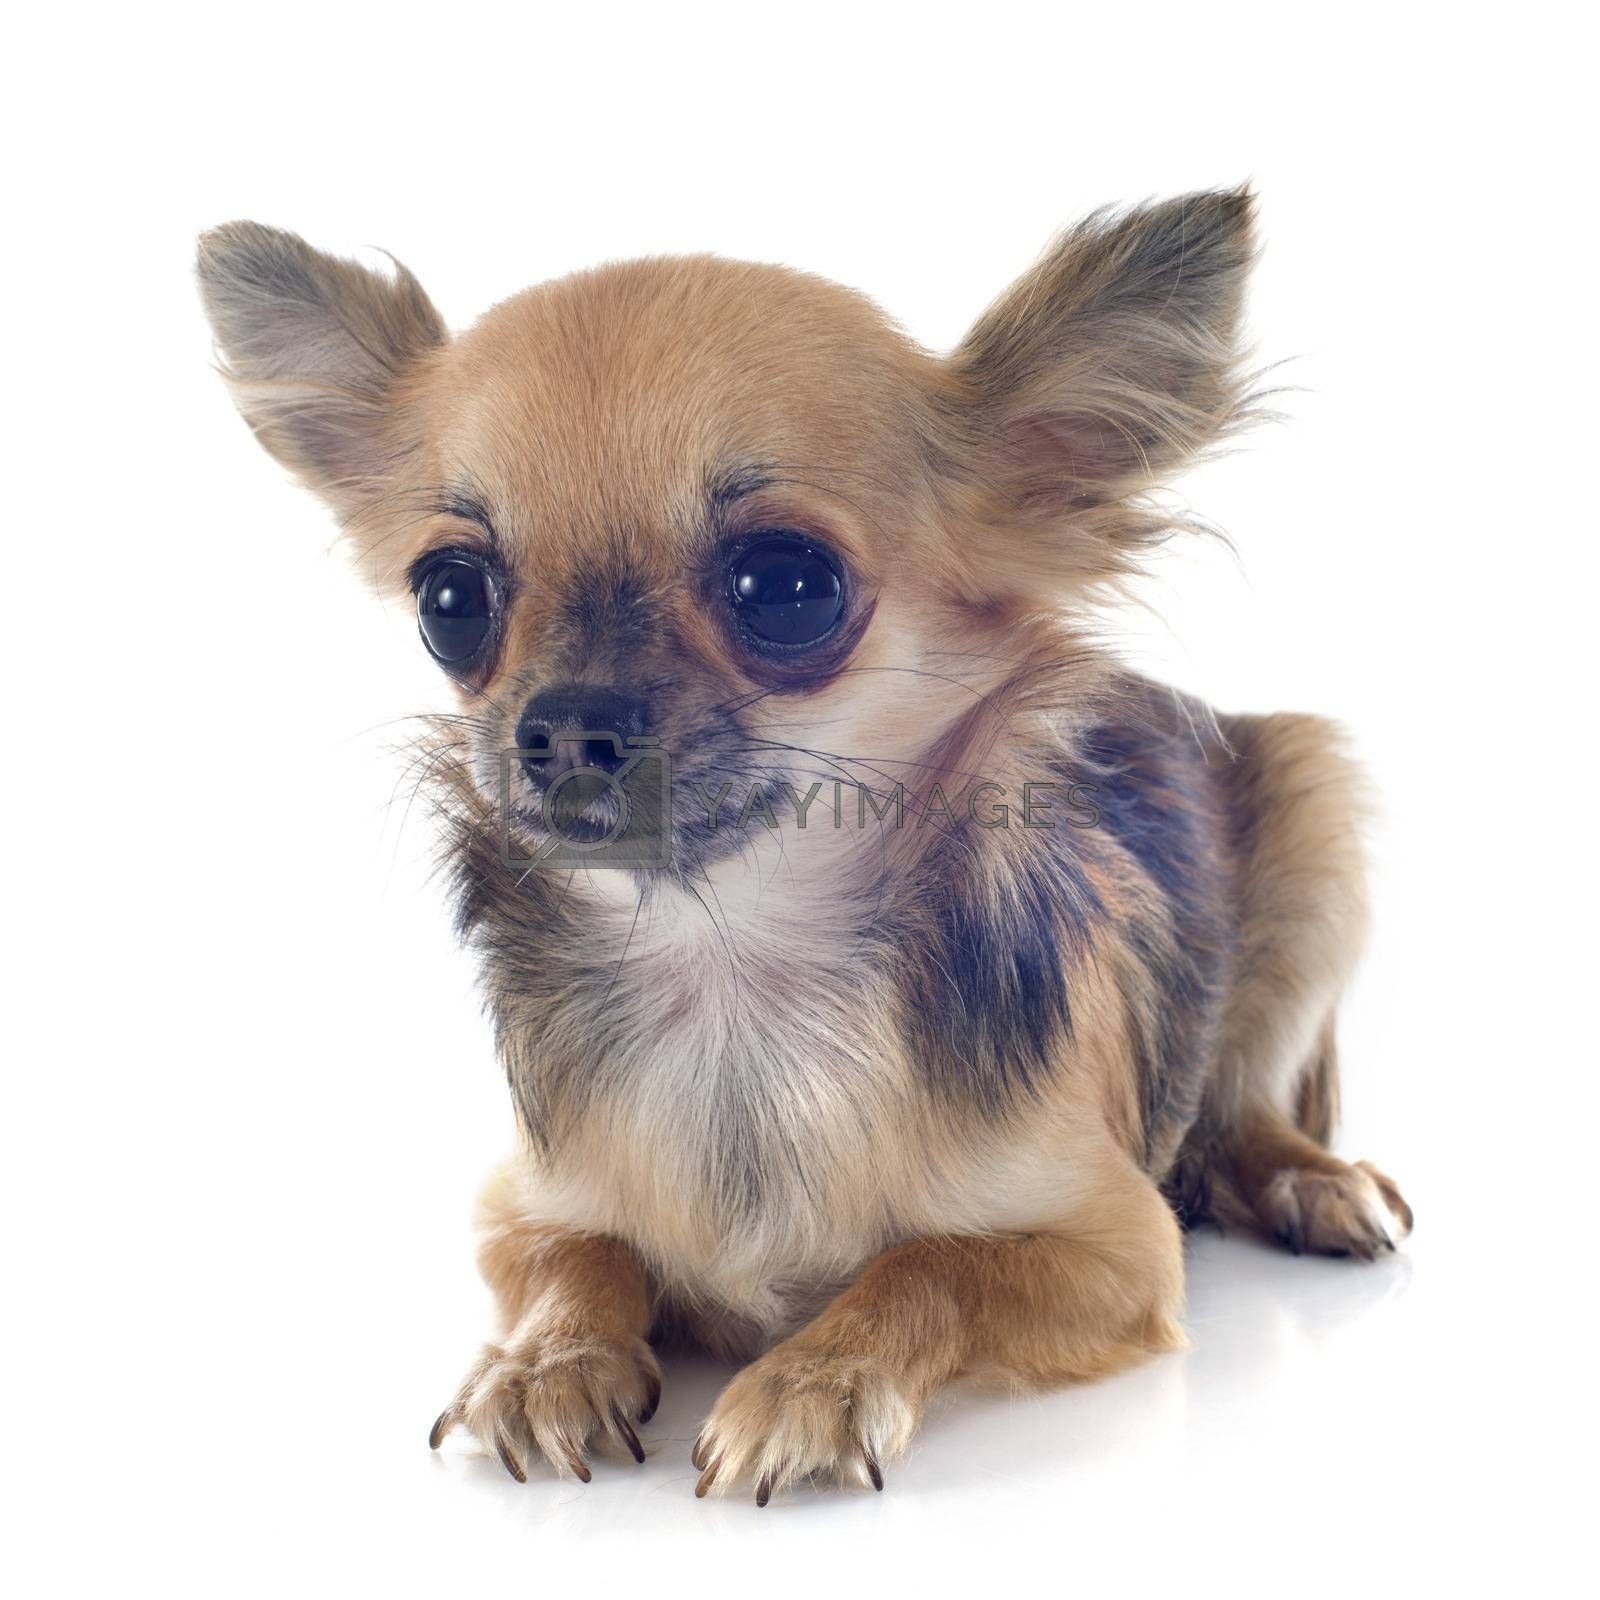 Royalty free image of puppy chihuahua by cynoclub